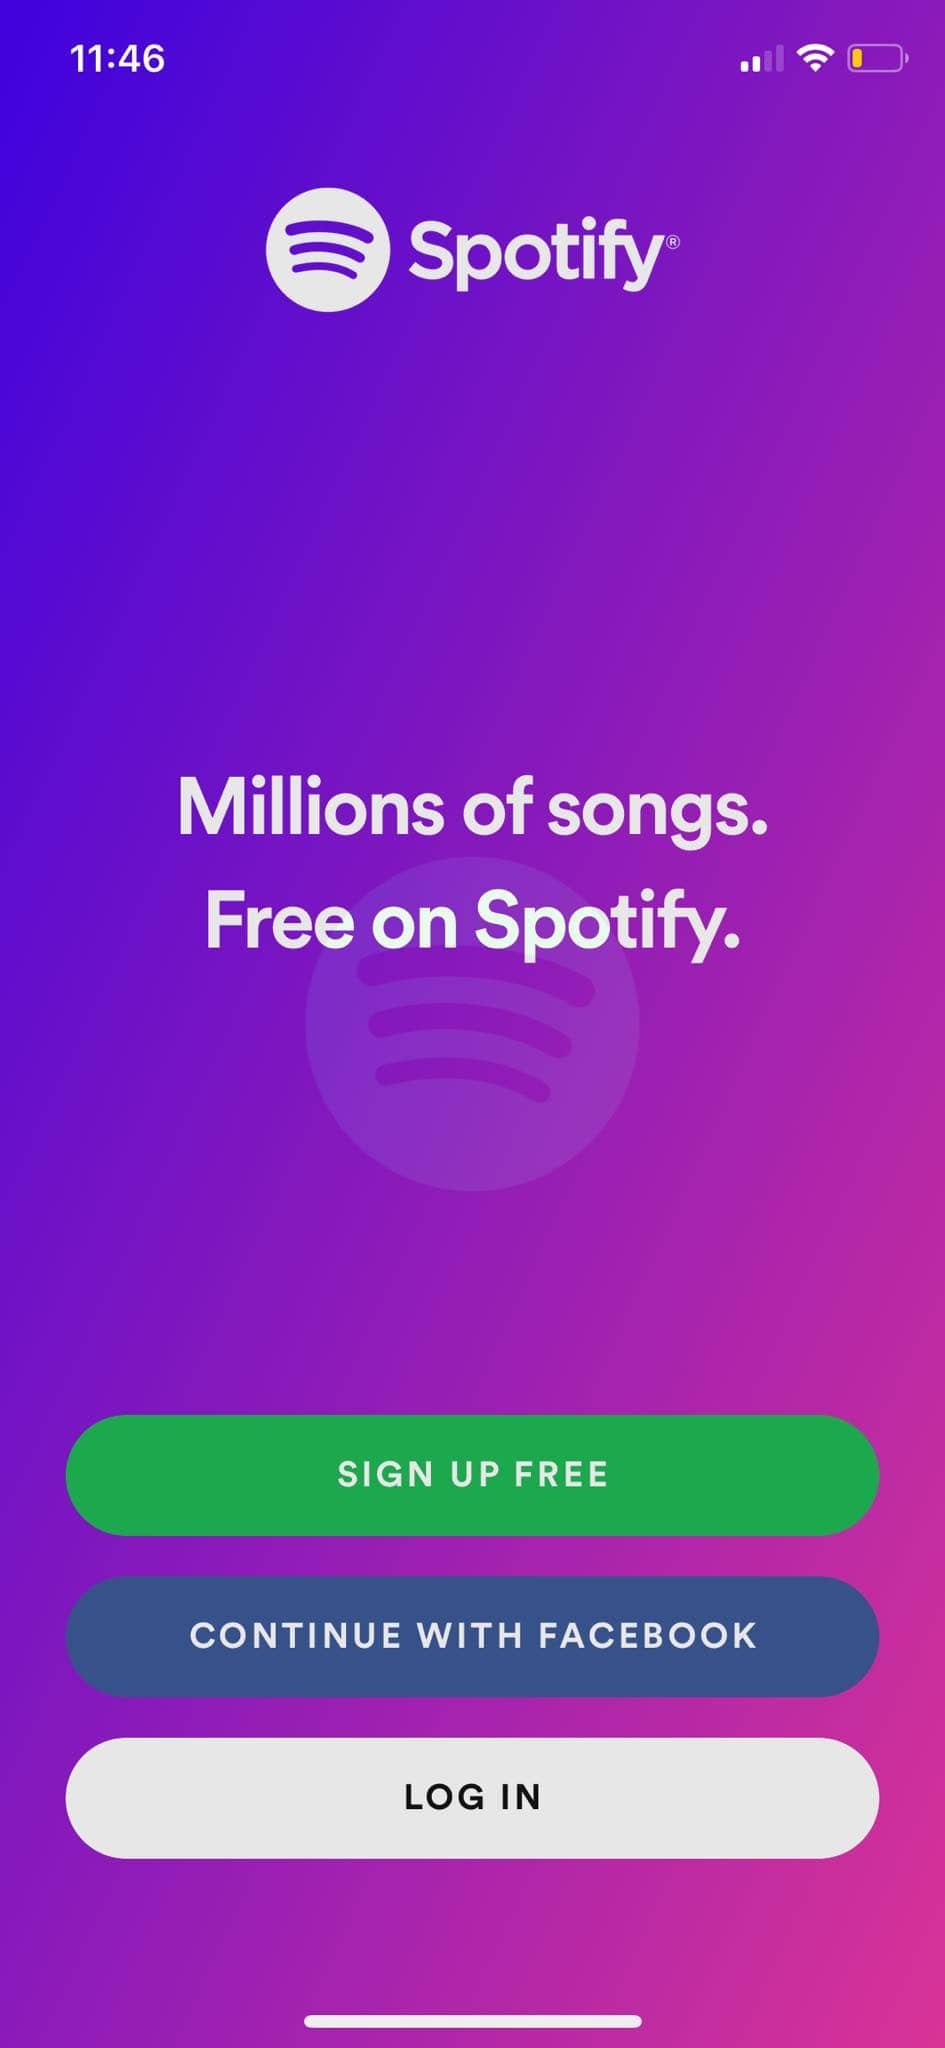 Landing Page on iOS by Spotify from UIGarage